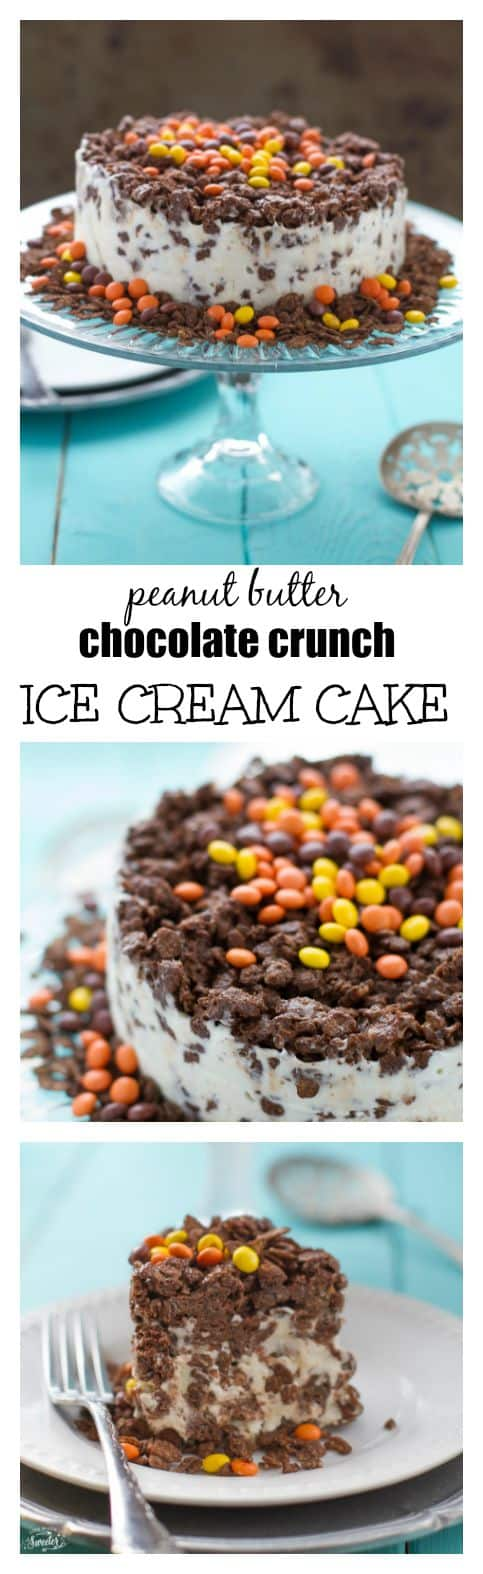 Peanut Butter Chocolate Crunch Ice Cream Cake is so easy to make with only 5 ingredients.